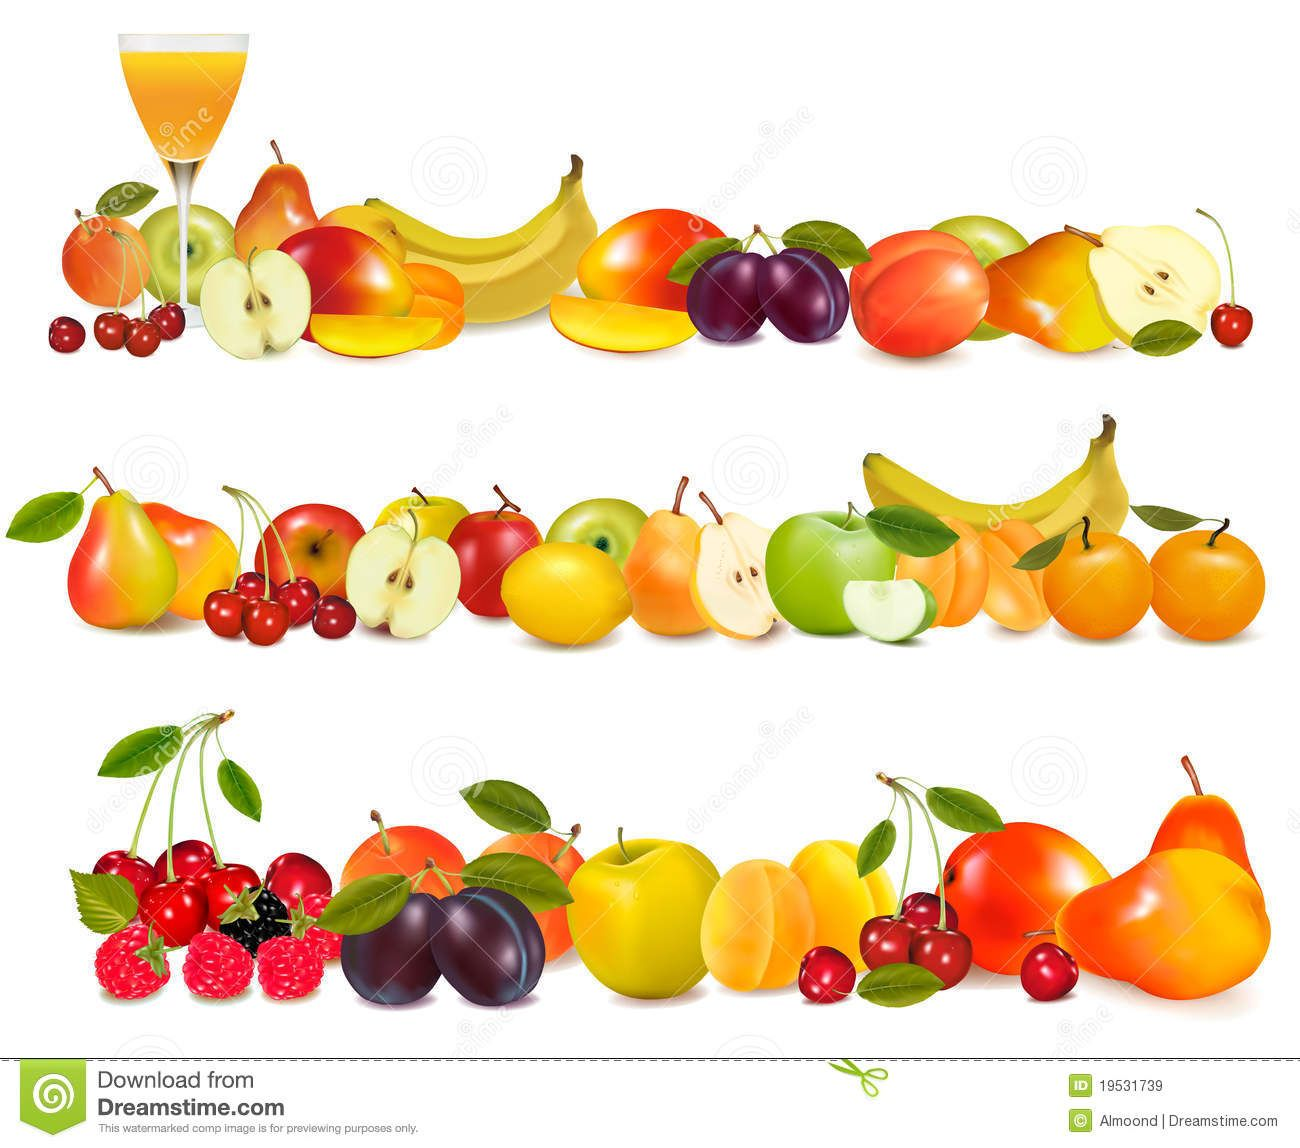 Tropical fruit border clipart free vector download Best Photos of Fruit And Vegetable Border - Food Borders ... vector download